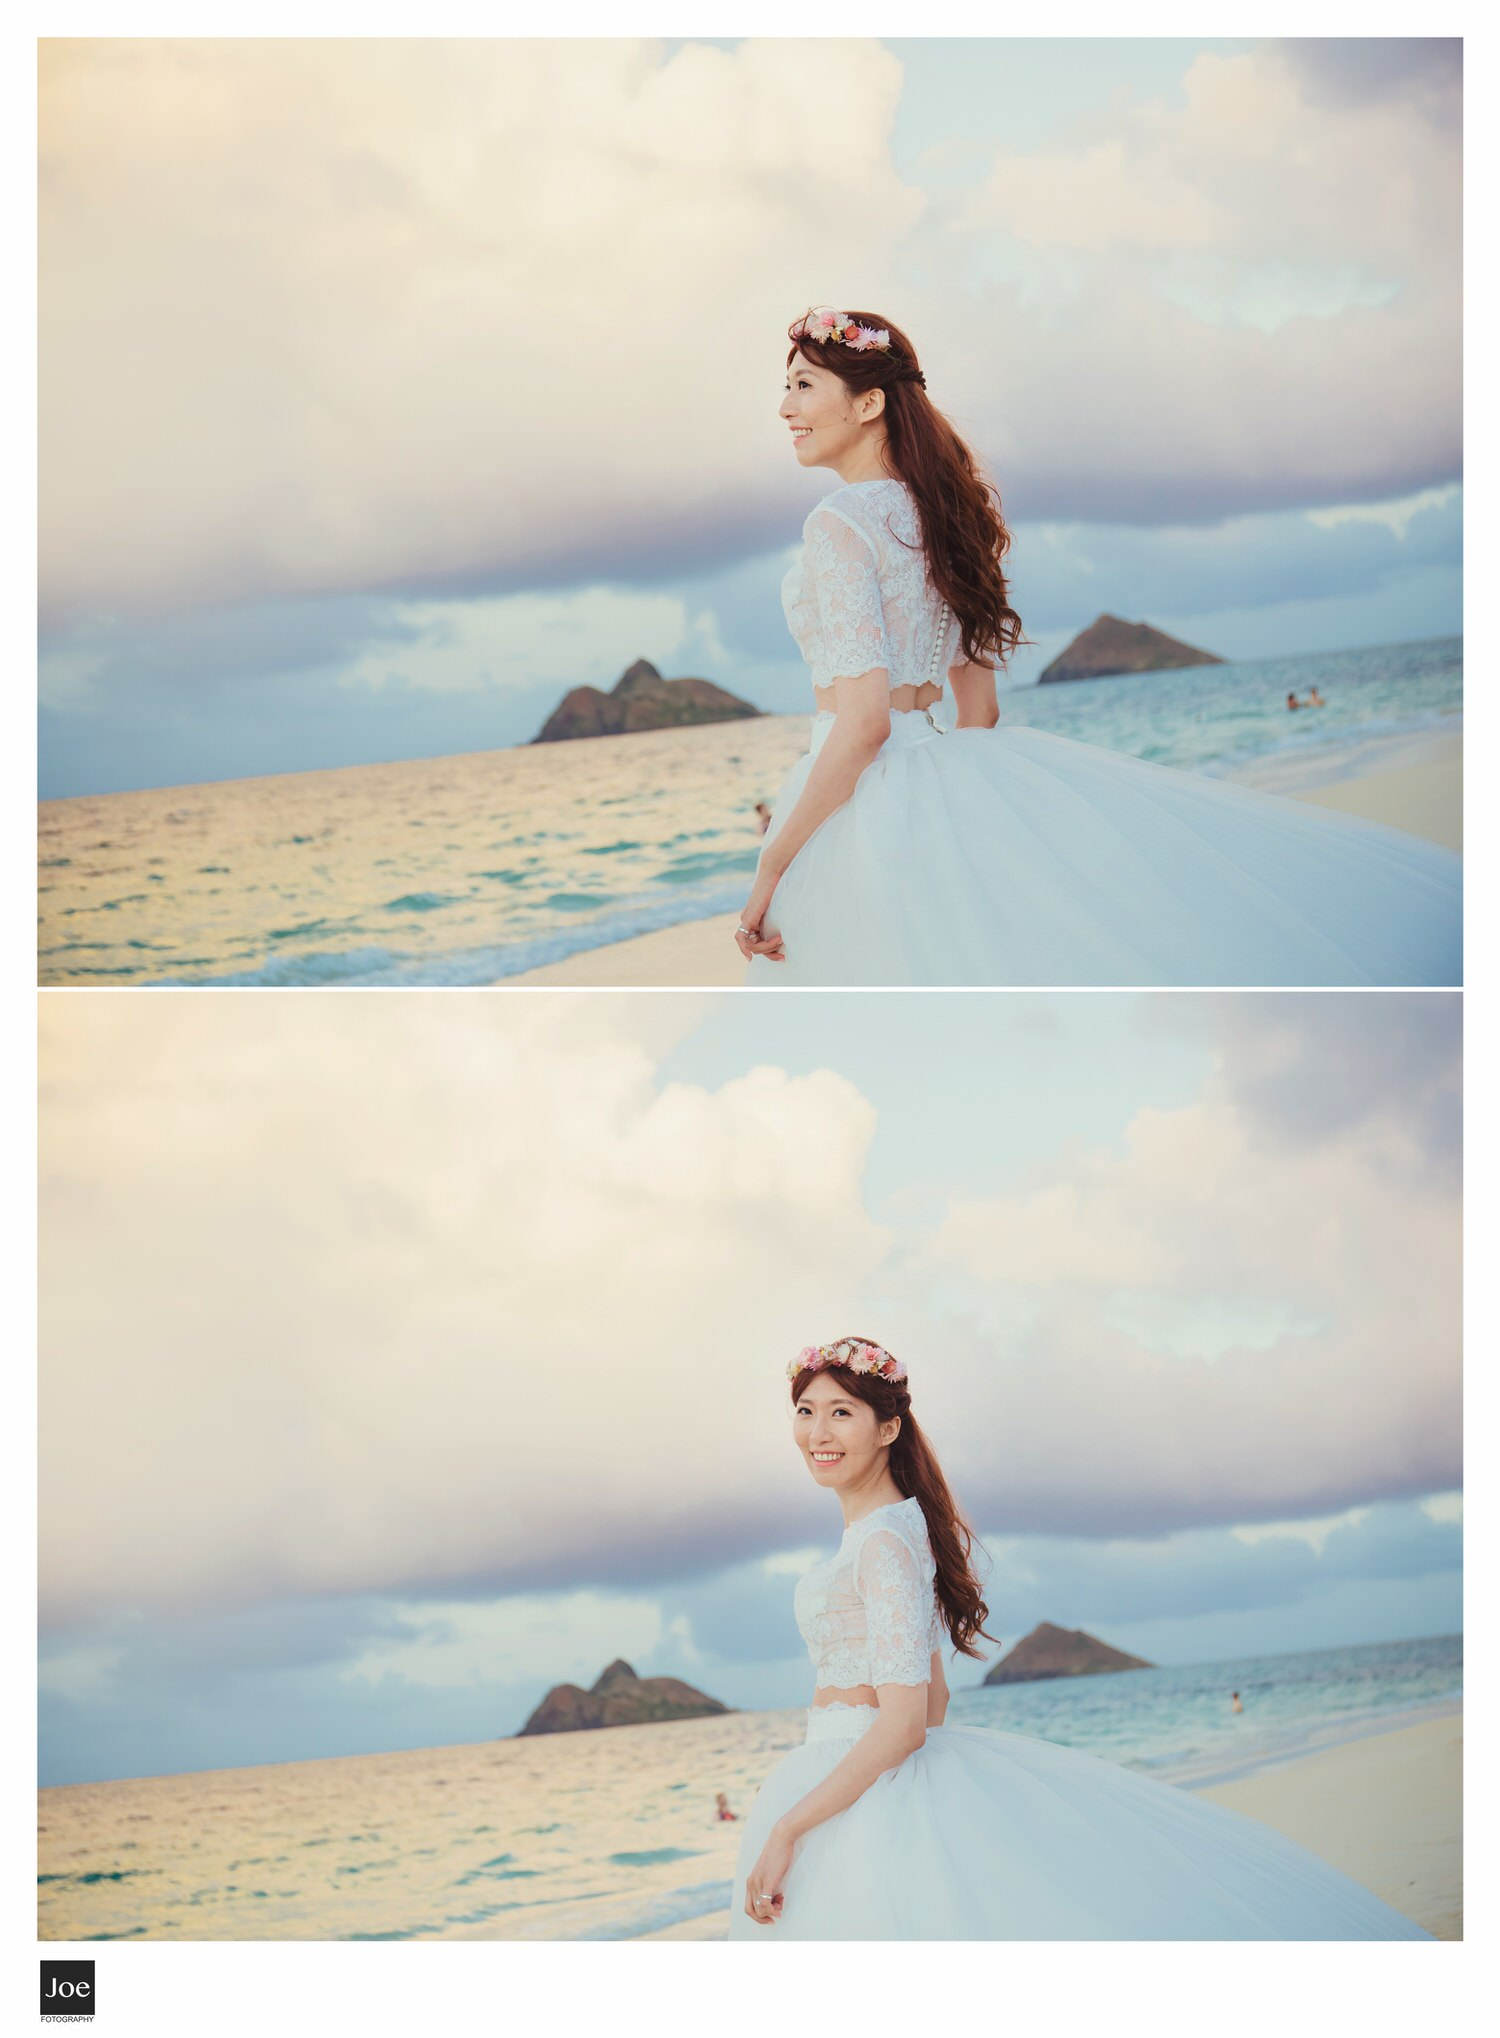 053-lanikai-beach-hawaii-pre-wedding-tiffany-tony-joe-fotography.jpg